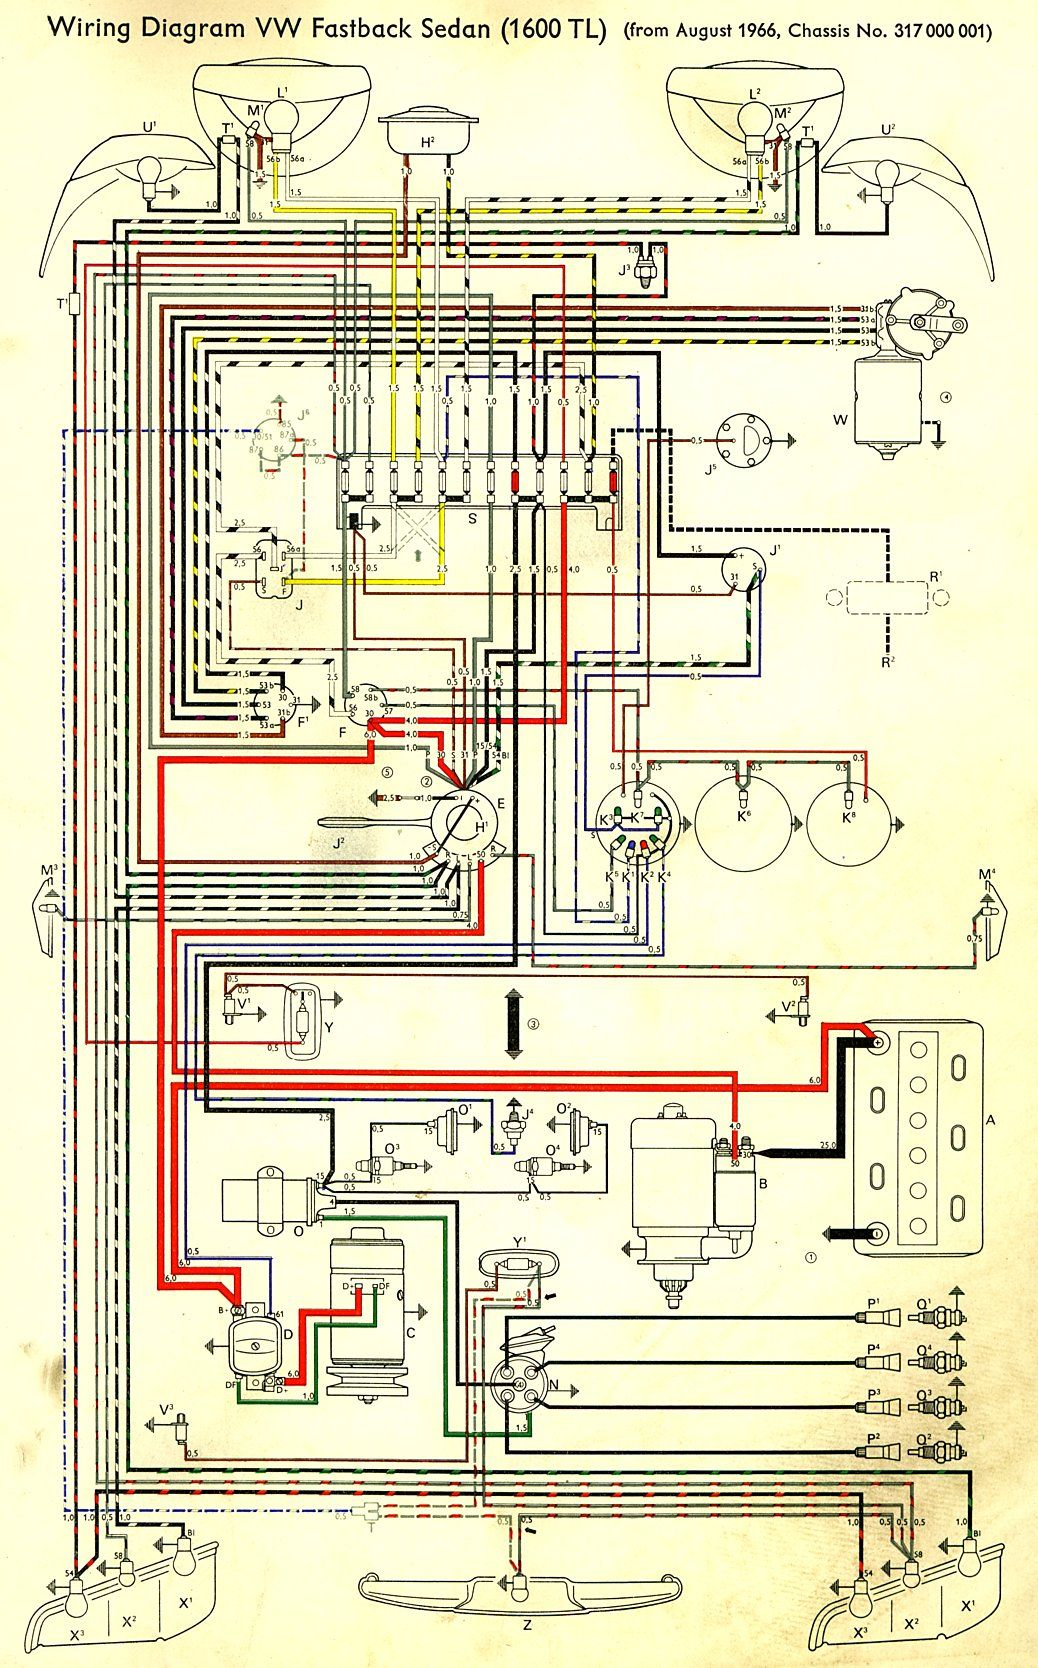 wiring diagram type 928 model 84 page 1 wiring 97 front engine, electronic  ingnition… | electrical wiring diagram, types of electrical wiring,  electrical diagram  pinterest